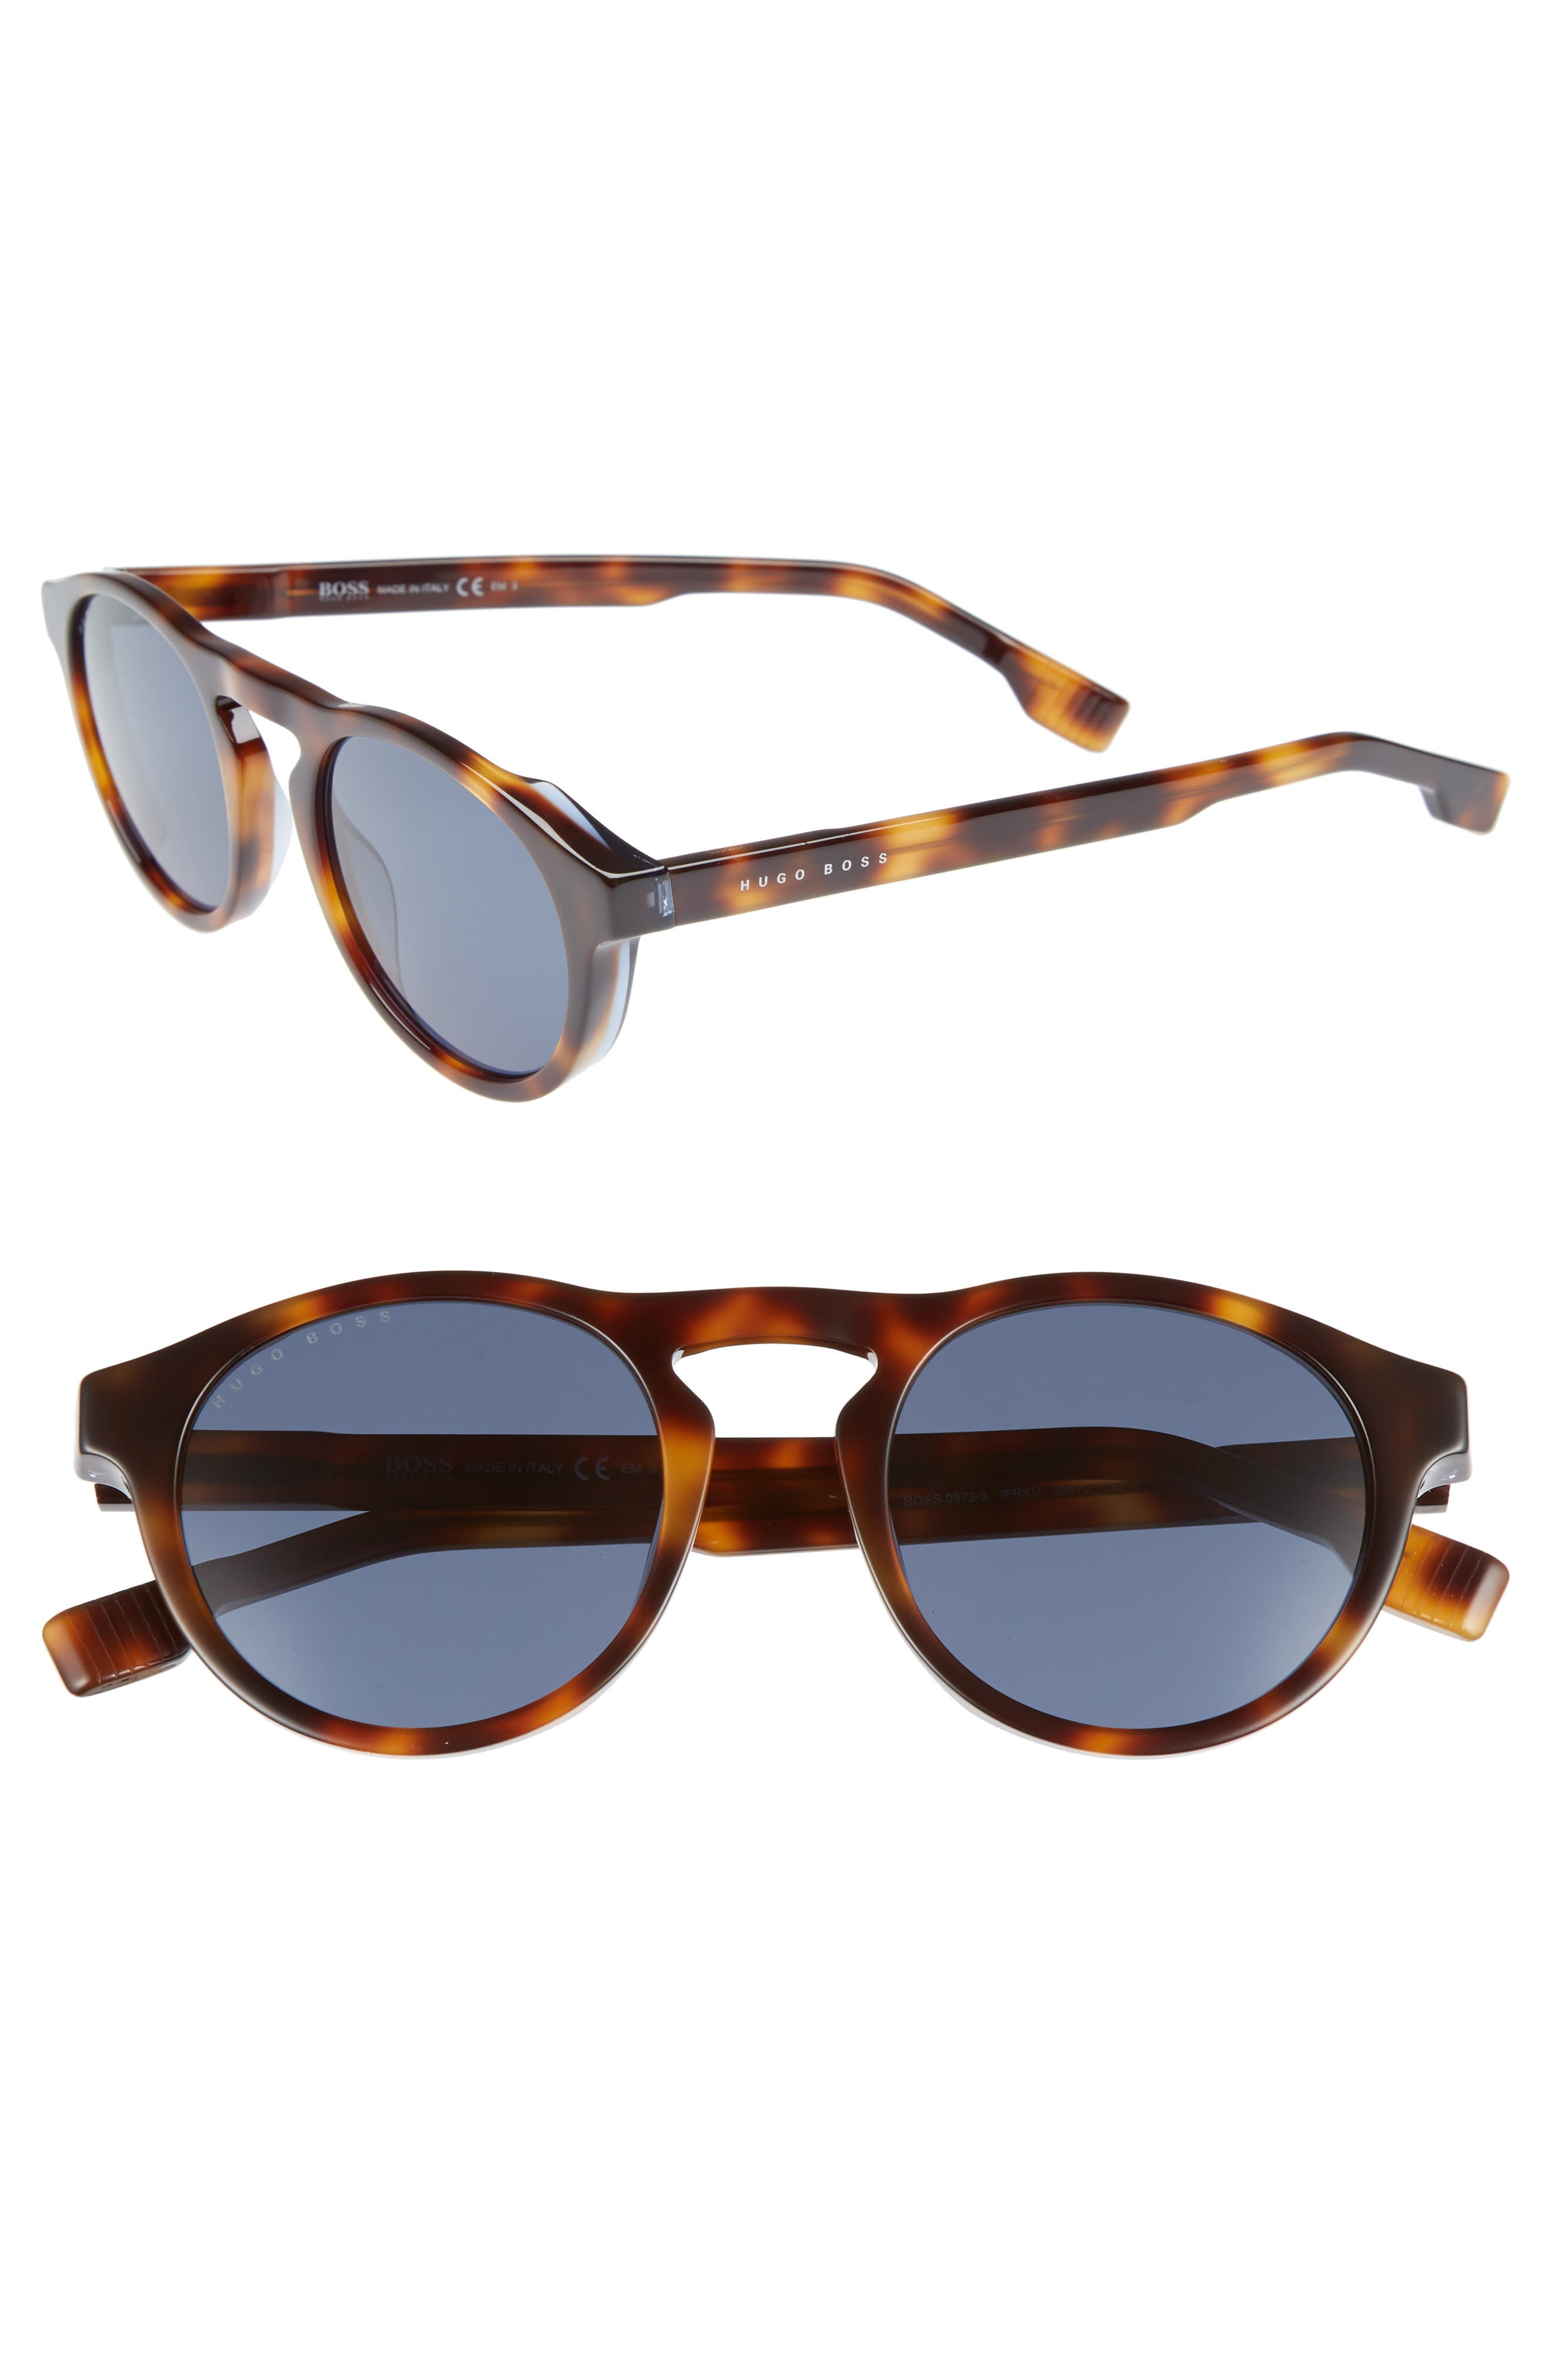 50mm Polarized Round Sunglasses,                         Main,                         color, HAVANA/ BLUE